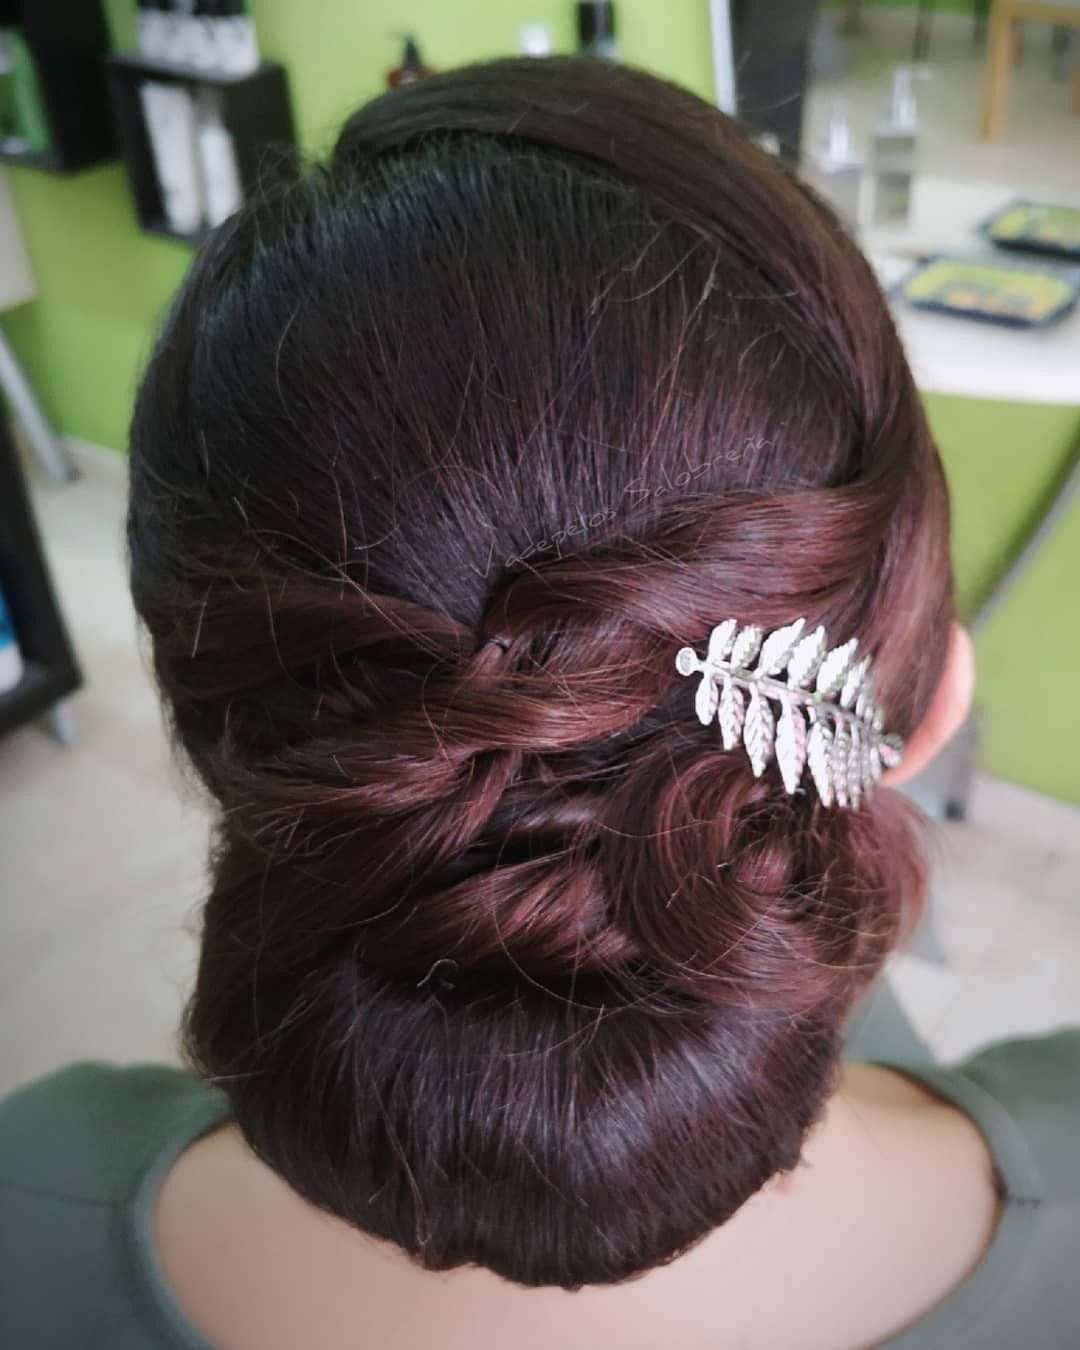 Recogidos #bridemaidshair #novias #weddingstyle #brideideas #bride #bridalstyles #bridallook #fashion #hairstyle #recogidos  #celebraciones #bridemaid #hair #hairstyles #peinados  #recogidosdefiesta #wedding #bodas #celebrate #instawedding #coletas #peluqueriasensalobreña #peluqueriayesteticavadepelos #bridemaidshair Recogidos #bridemaidshair #novias #weddingstyle #brideideas #bride #bridalstyles #bridallook #fashion #hairstyle #recogidos  #celebraciones #bridemaid #hair #hairstyles #peinados # #bridemaidshair